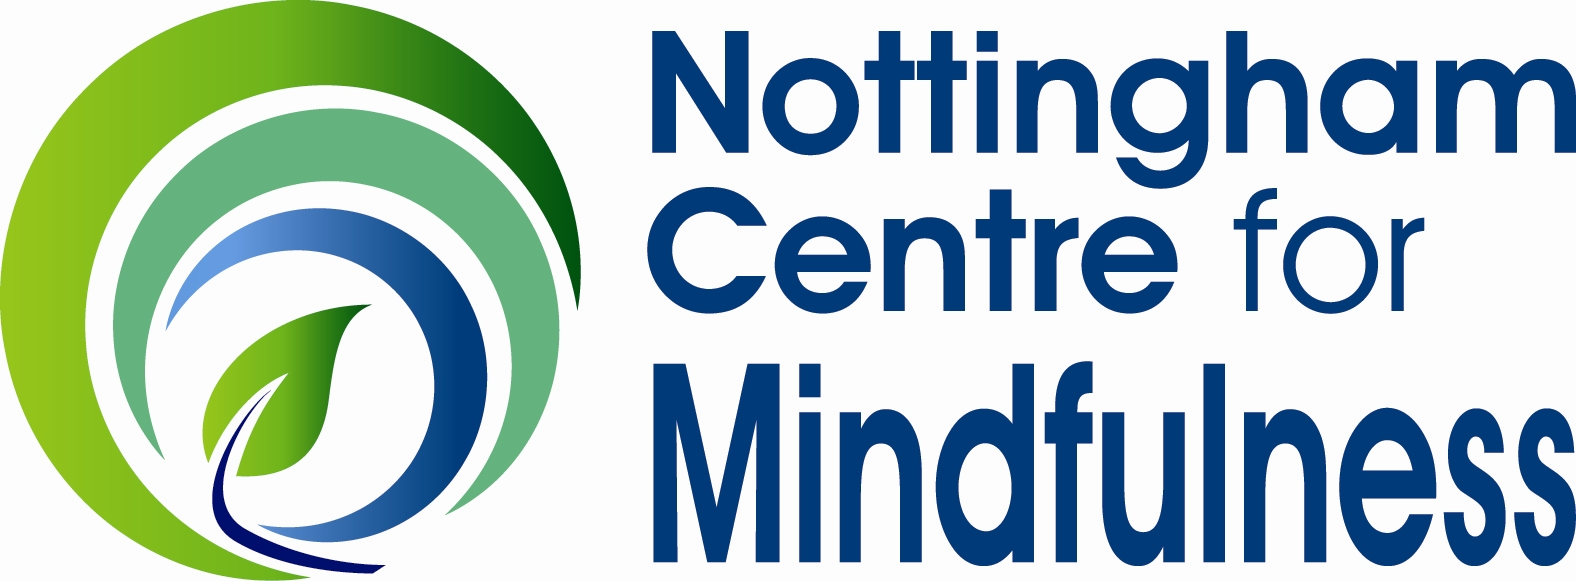 Nottingham Centre for Mindfulness logo